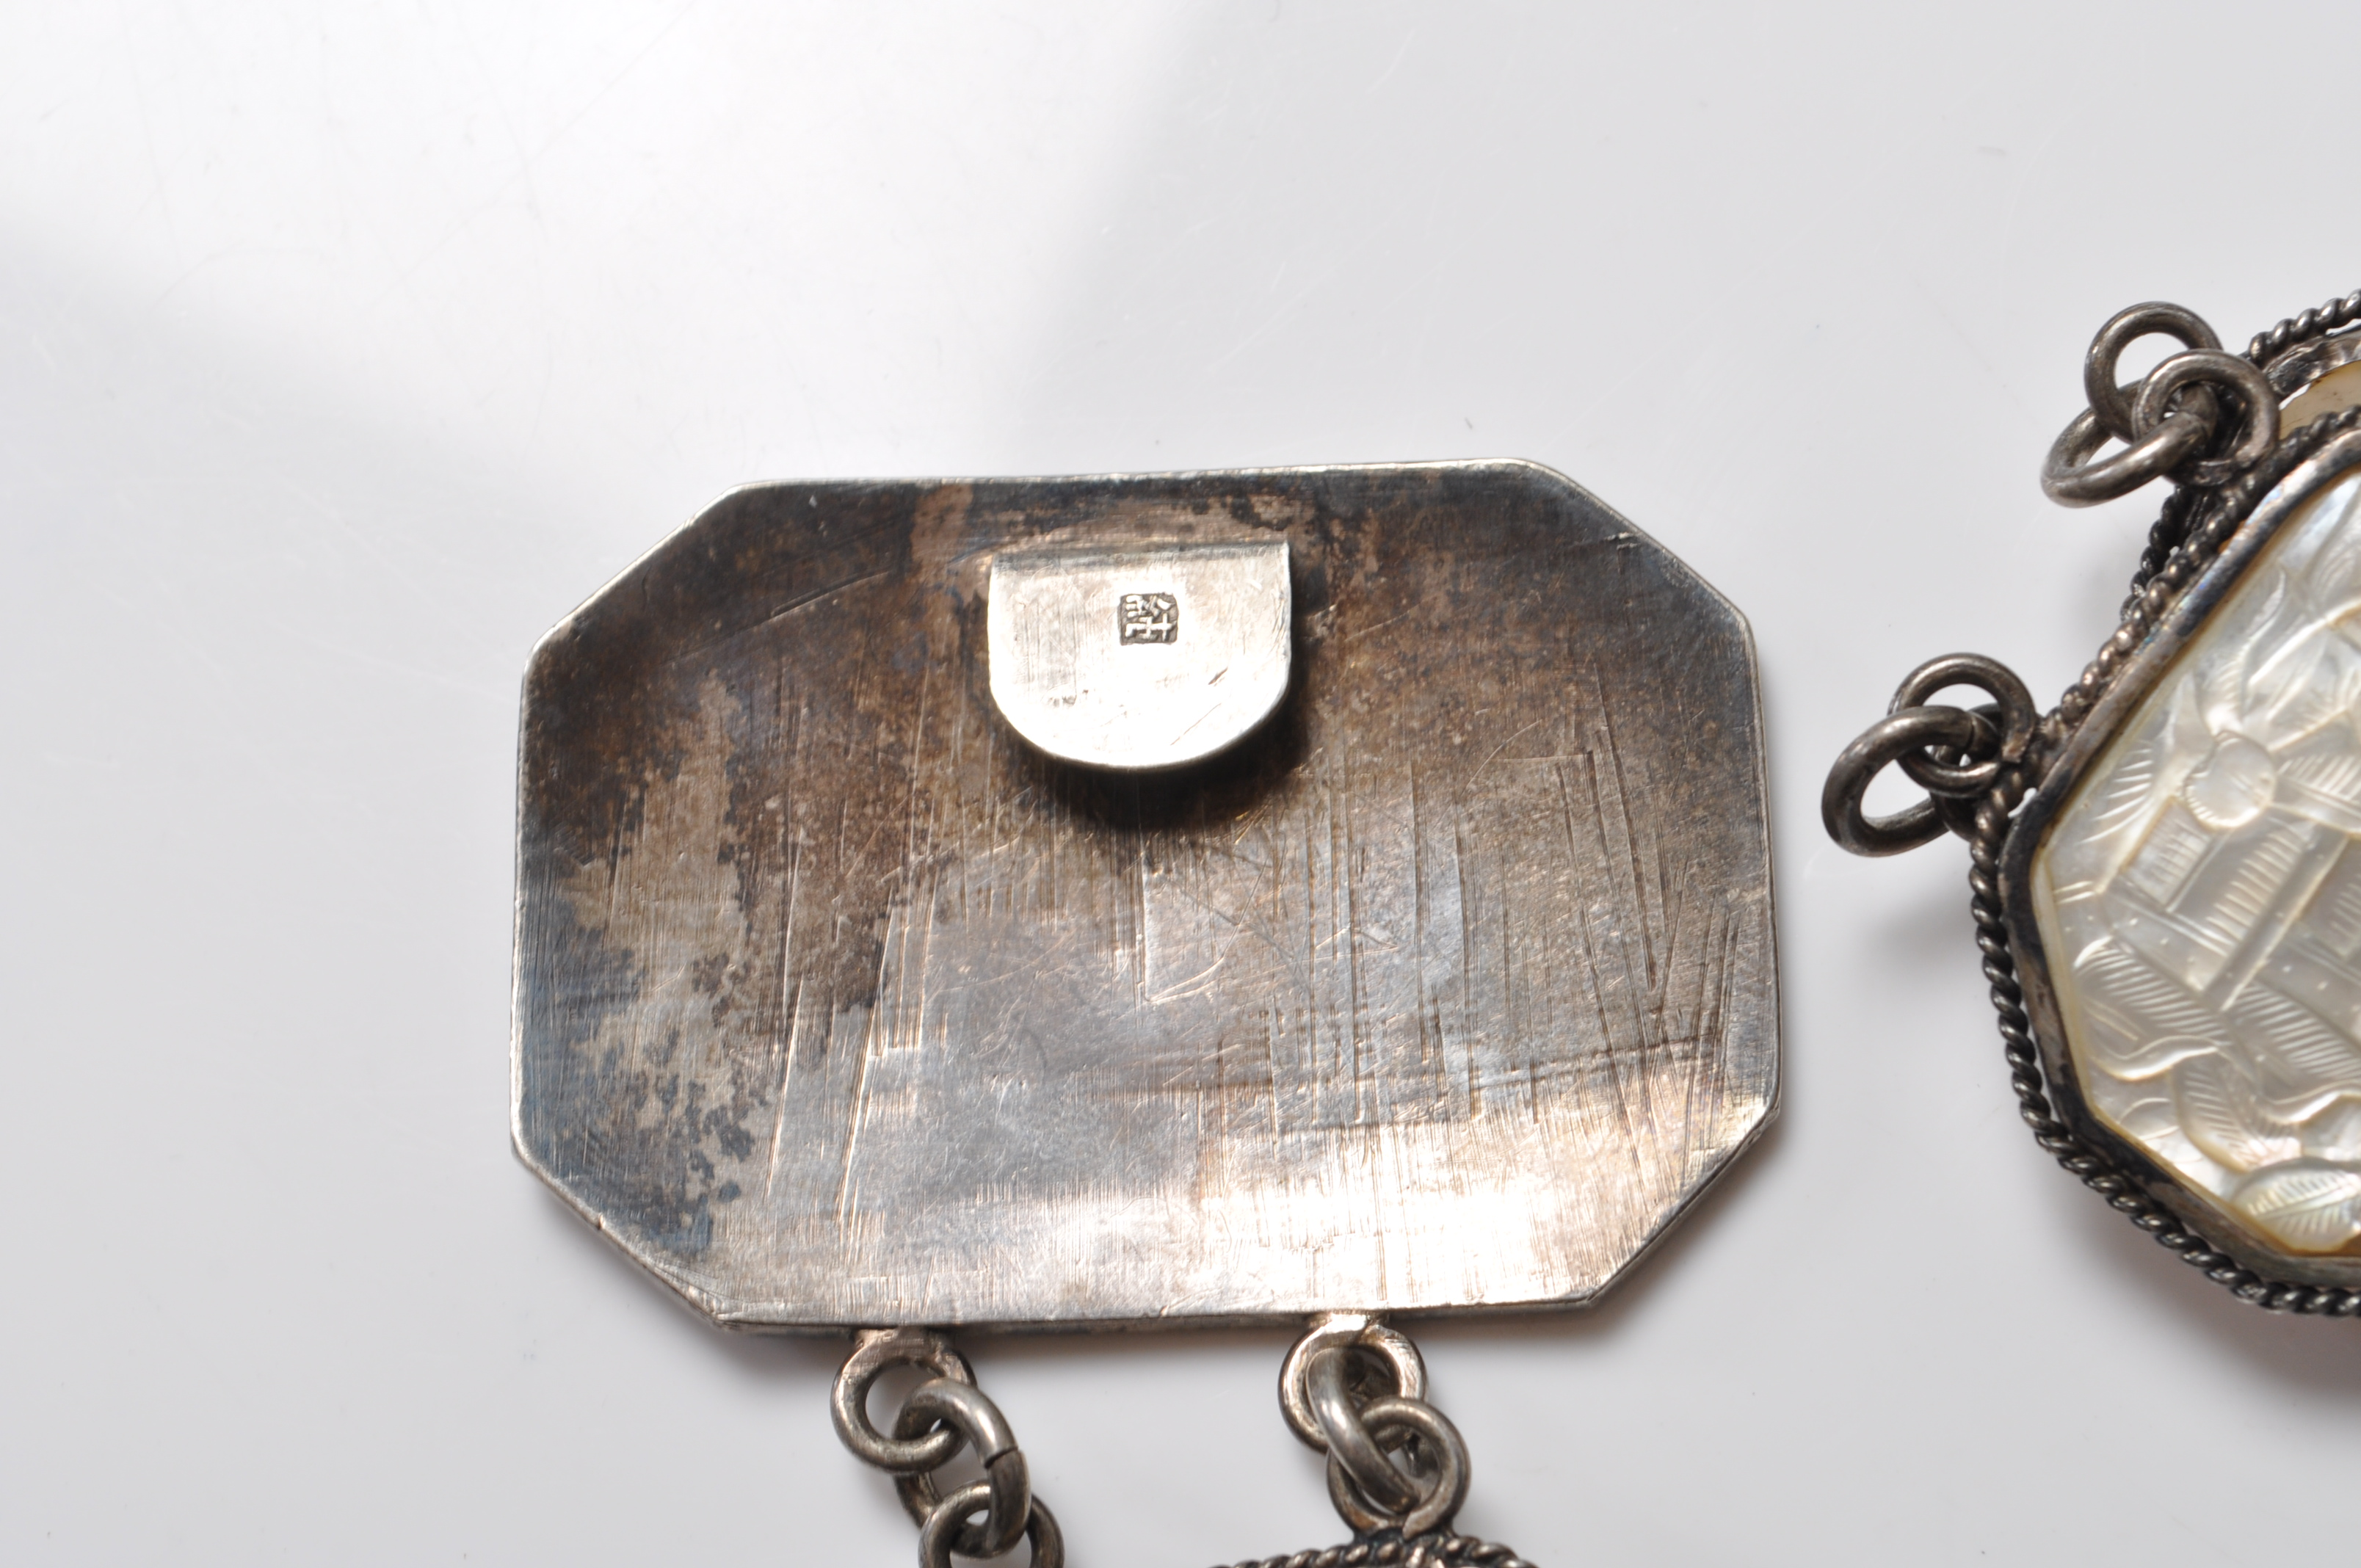 ANTIQUE CHINESE SILVER AND MOTHER OF PEARL BELT - Image 7 of 7